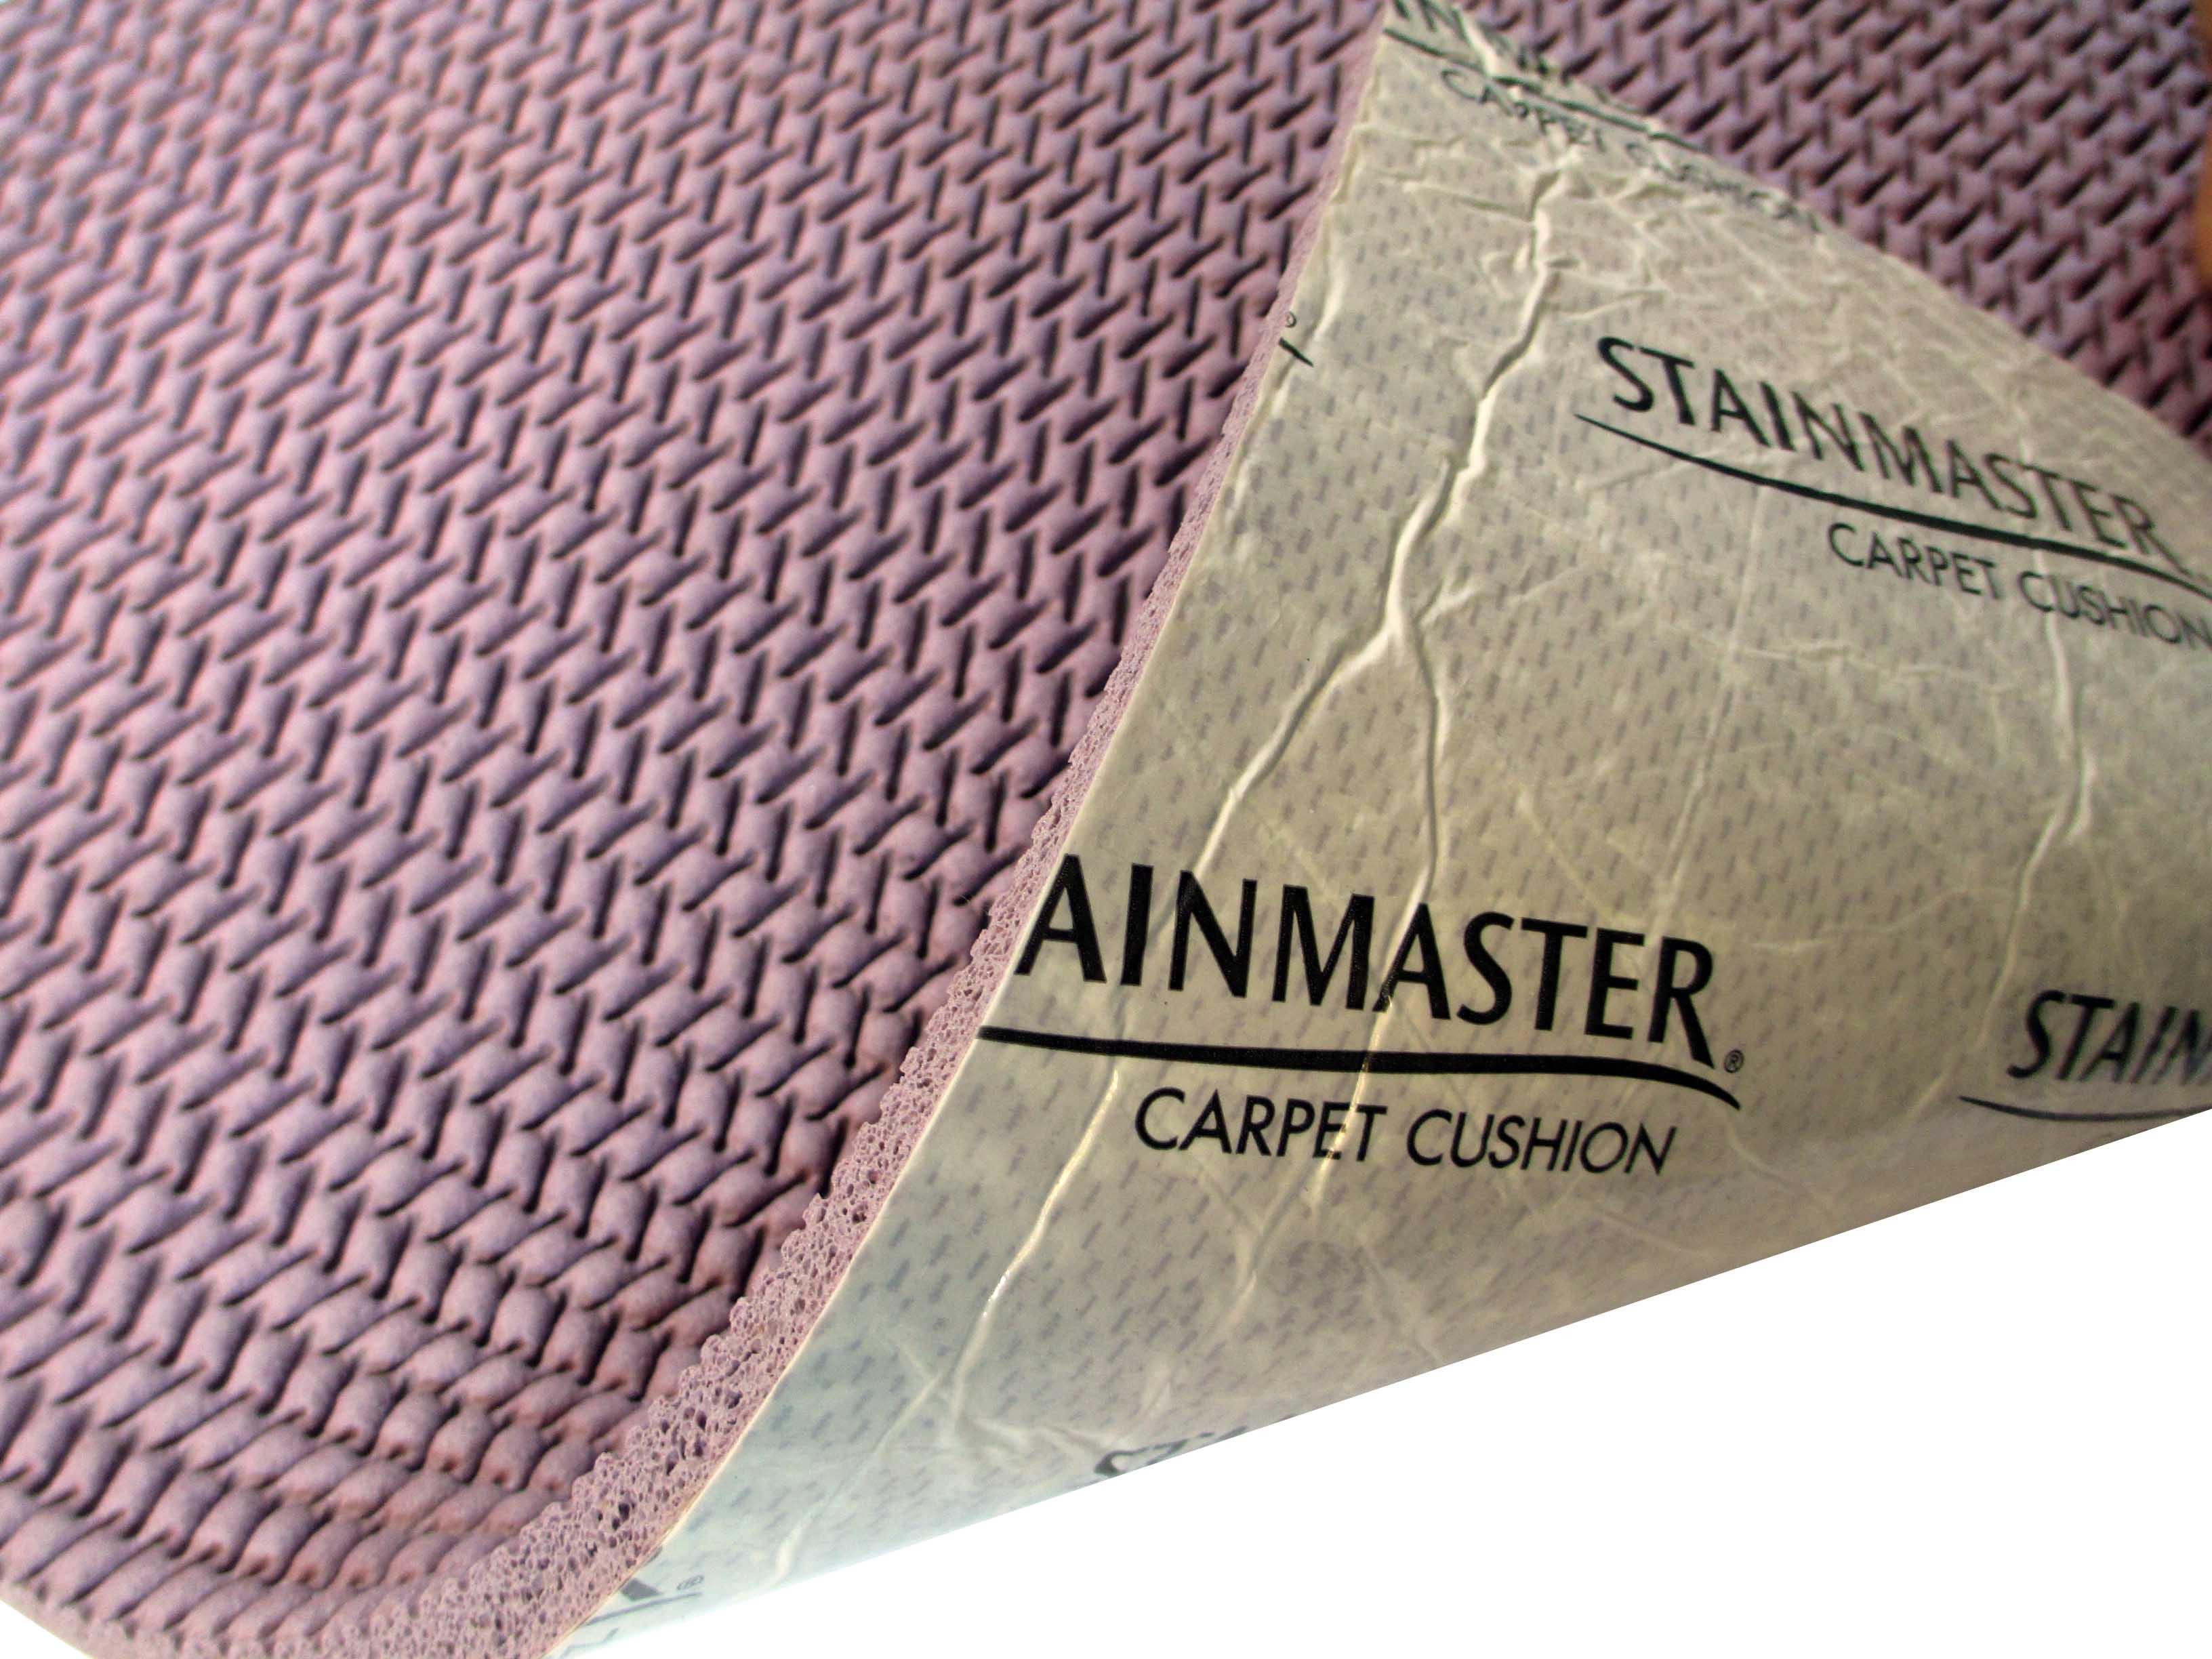 Stainmaster Premium Ultra Life Rubber Capet Cushion